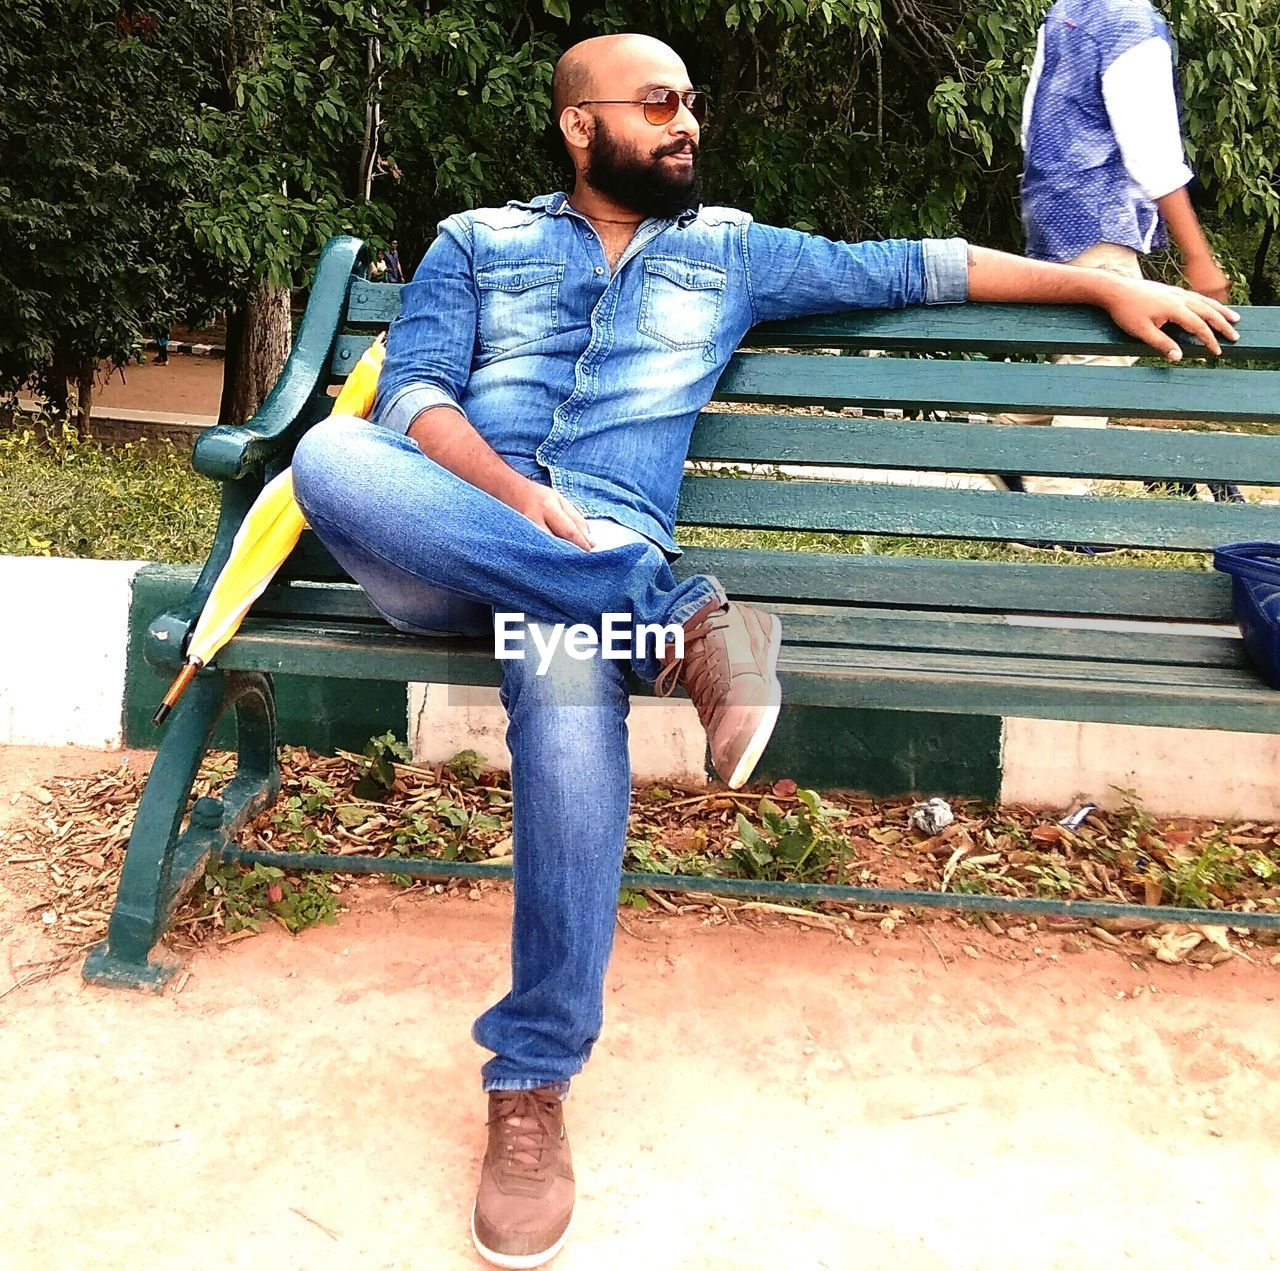 Man Sitting On Wooden Bench At Park